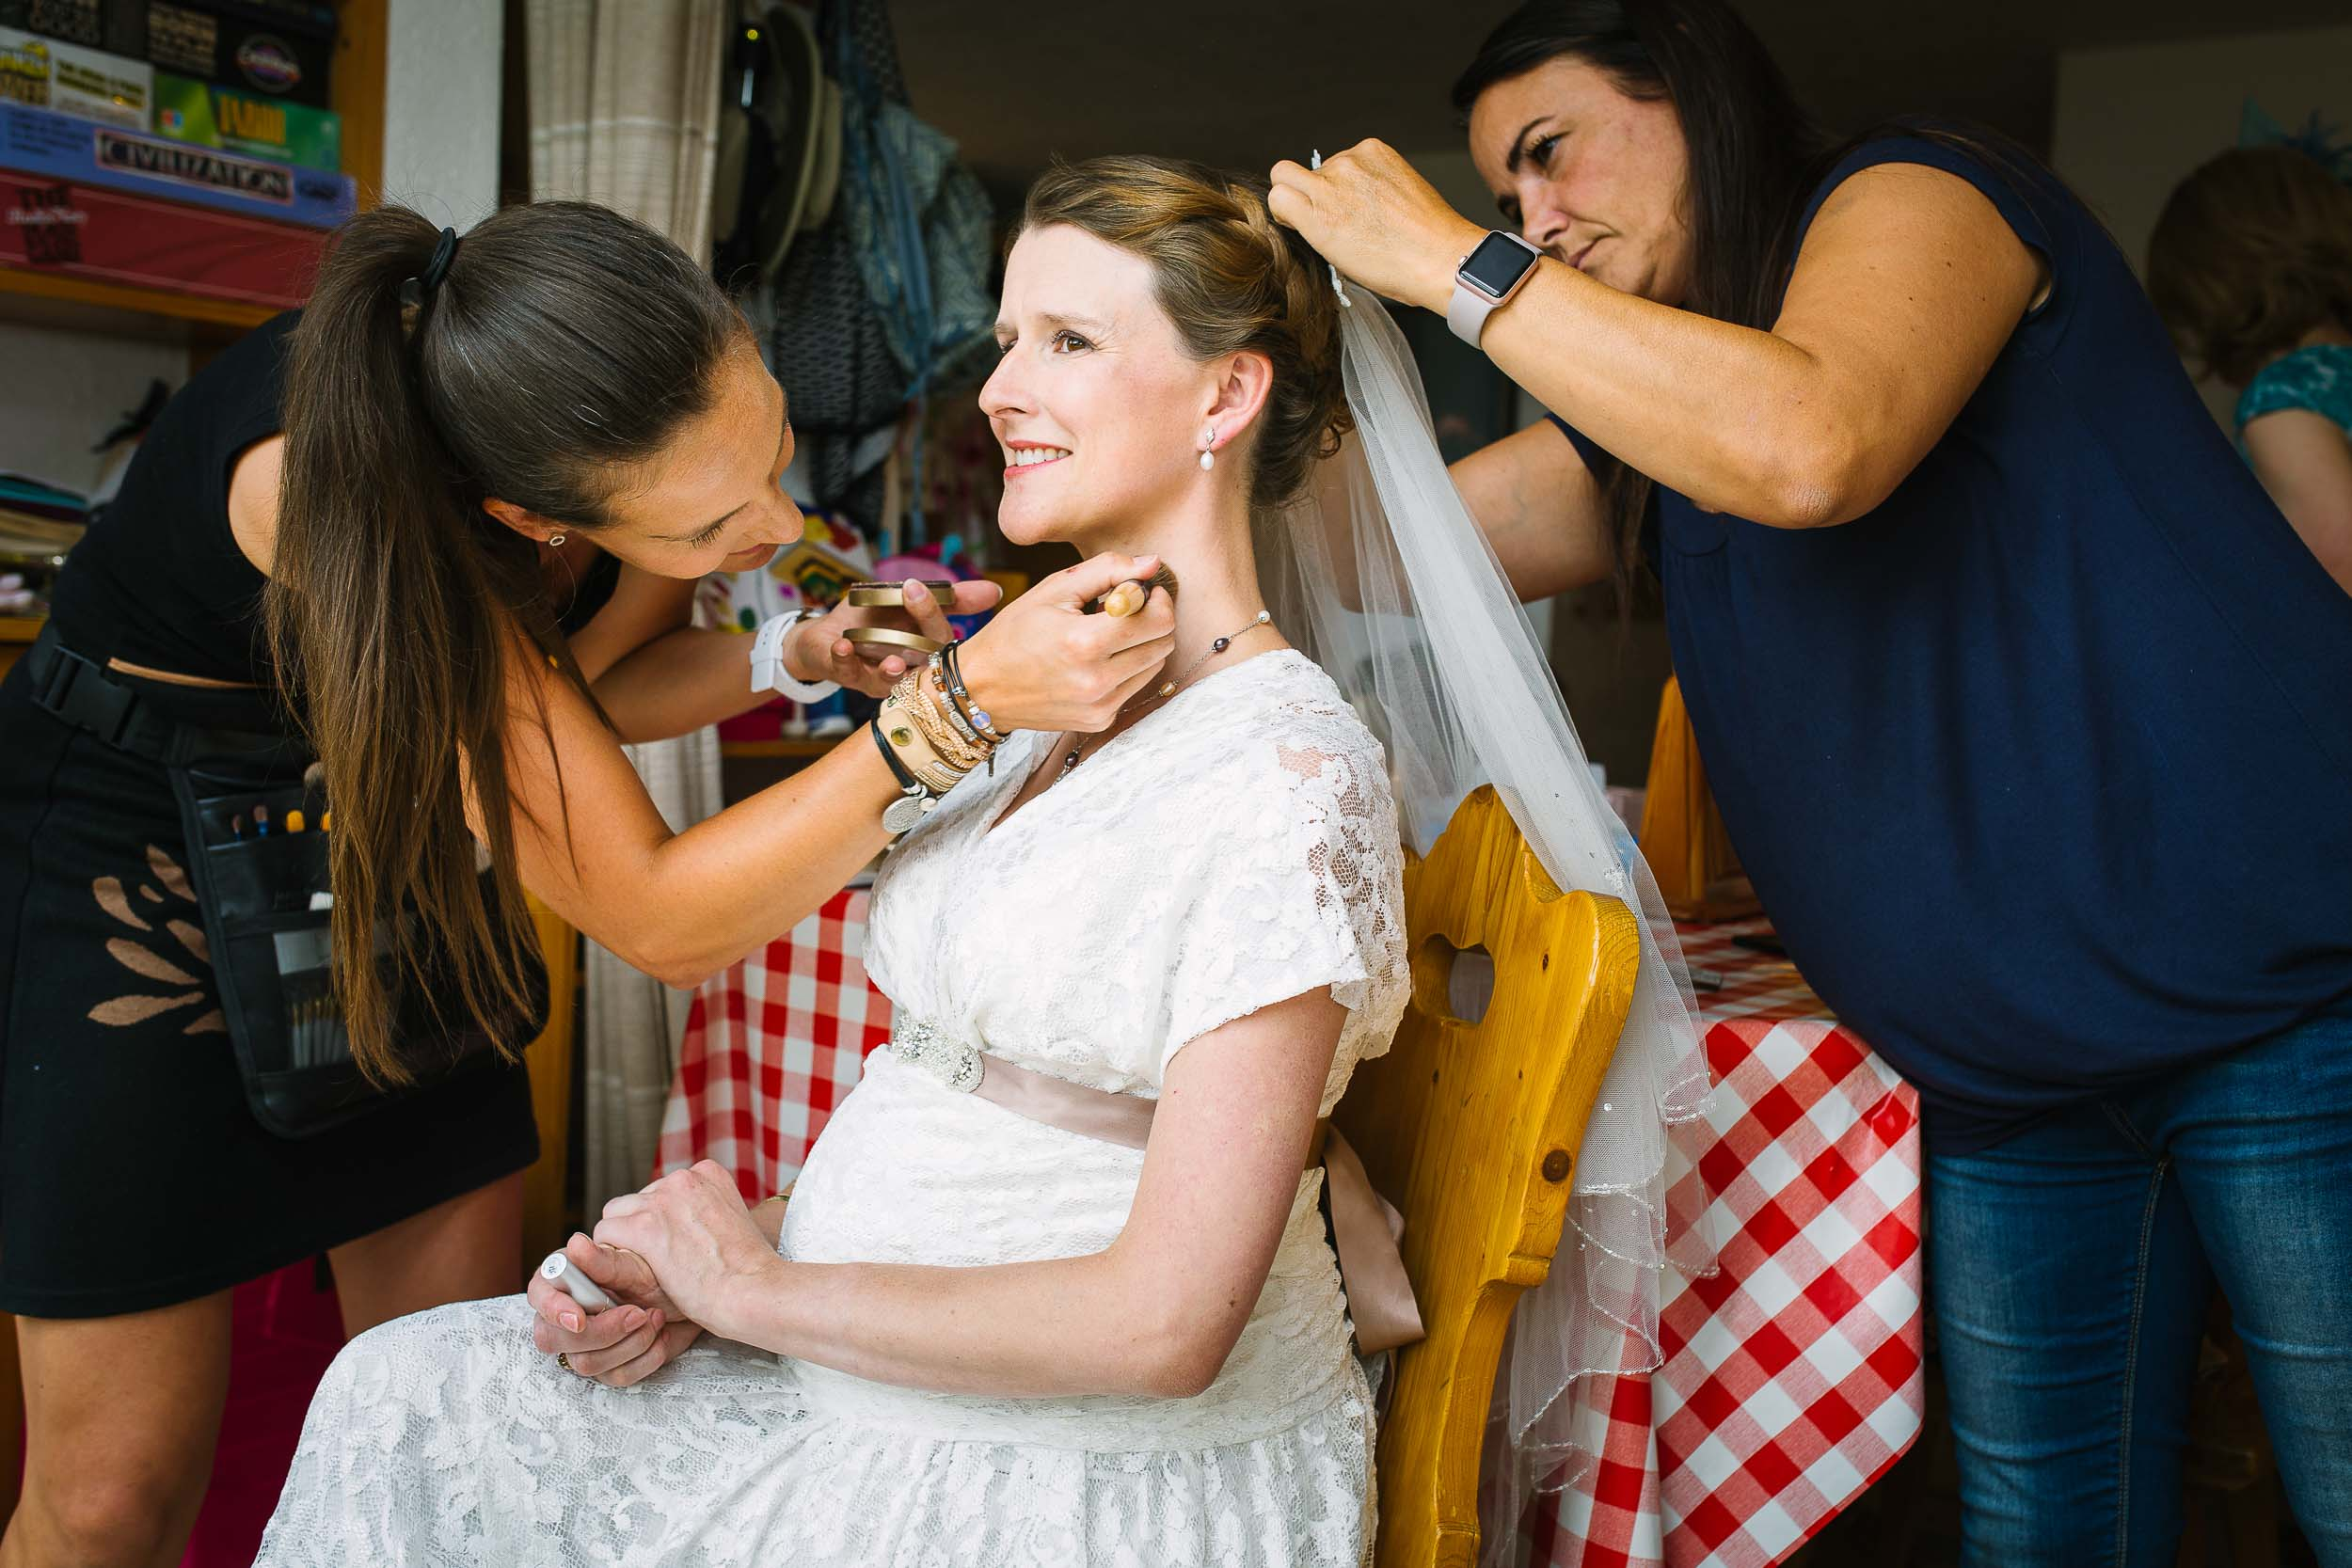 Wedding preparation photo hair and makeup